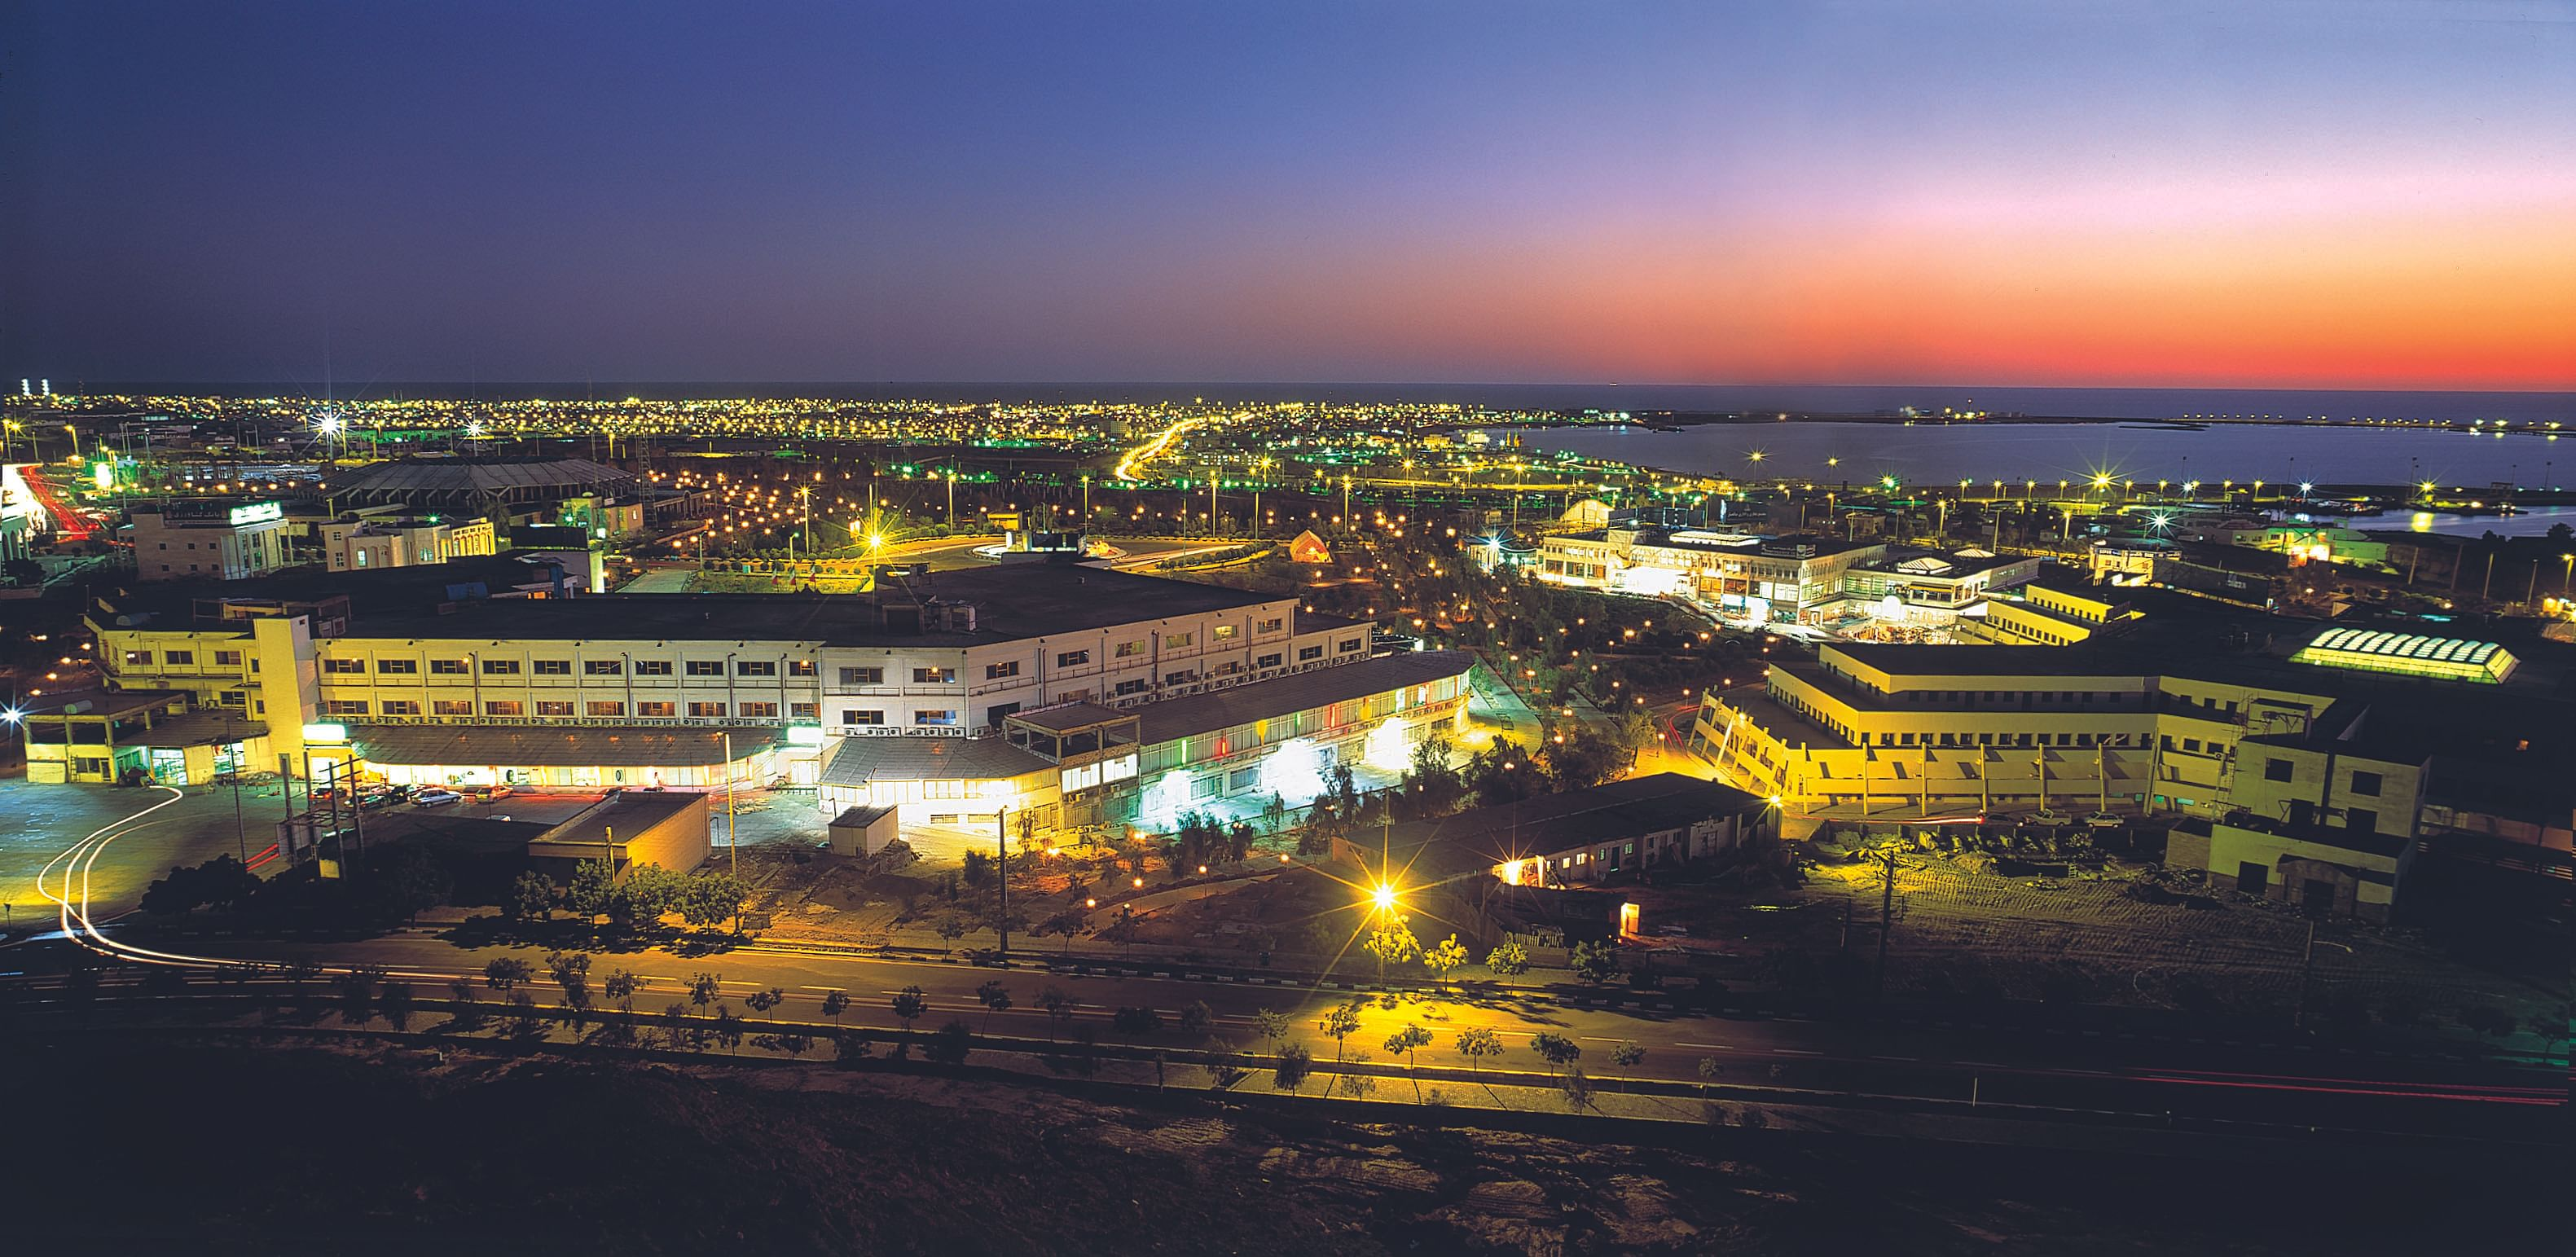 Night view of the Chabahar port (Source: Wikimedia Commons)